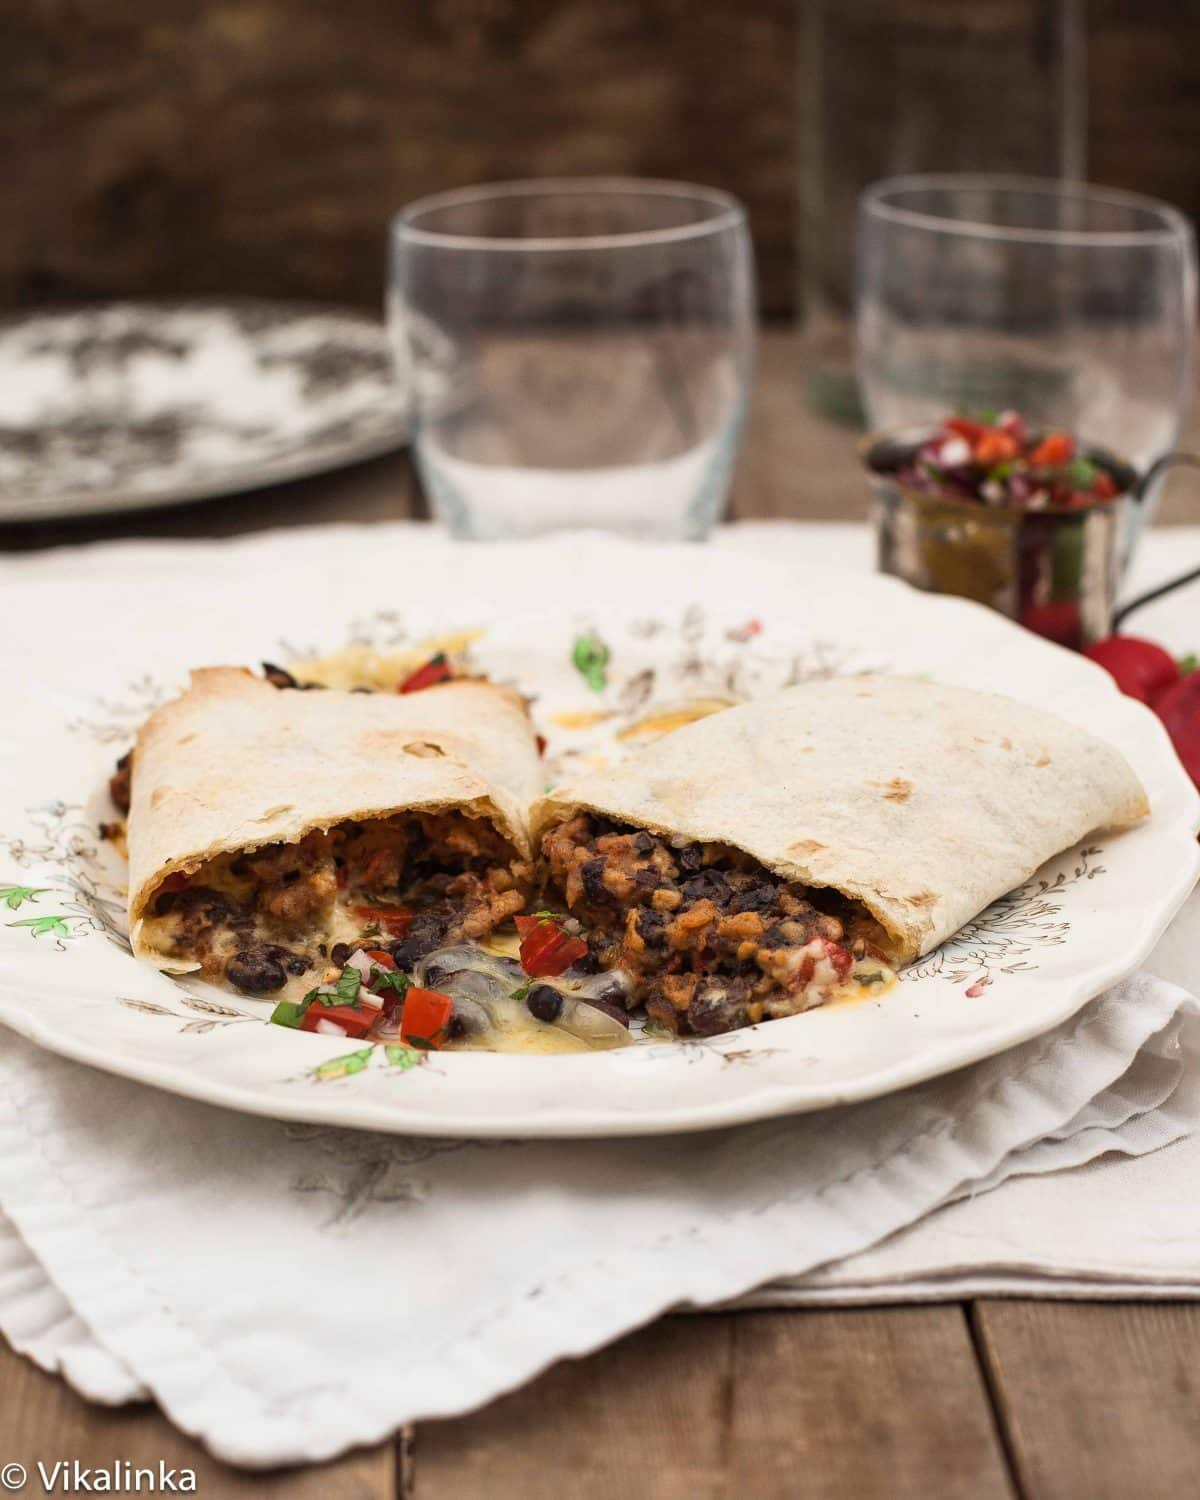 Sweet Chilli Sausage and Black Bean Burritos